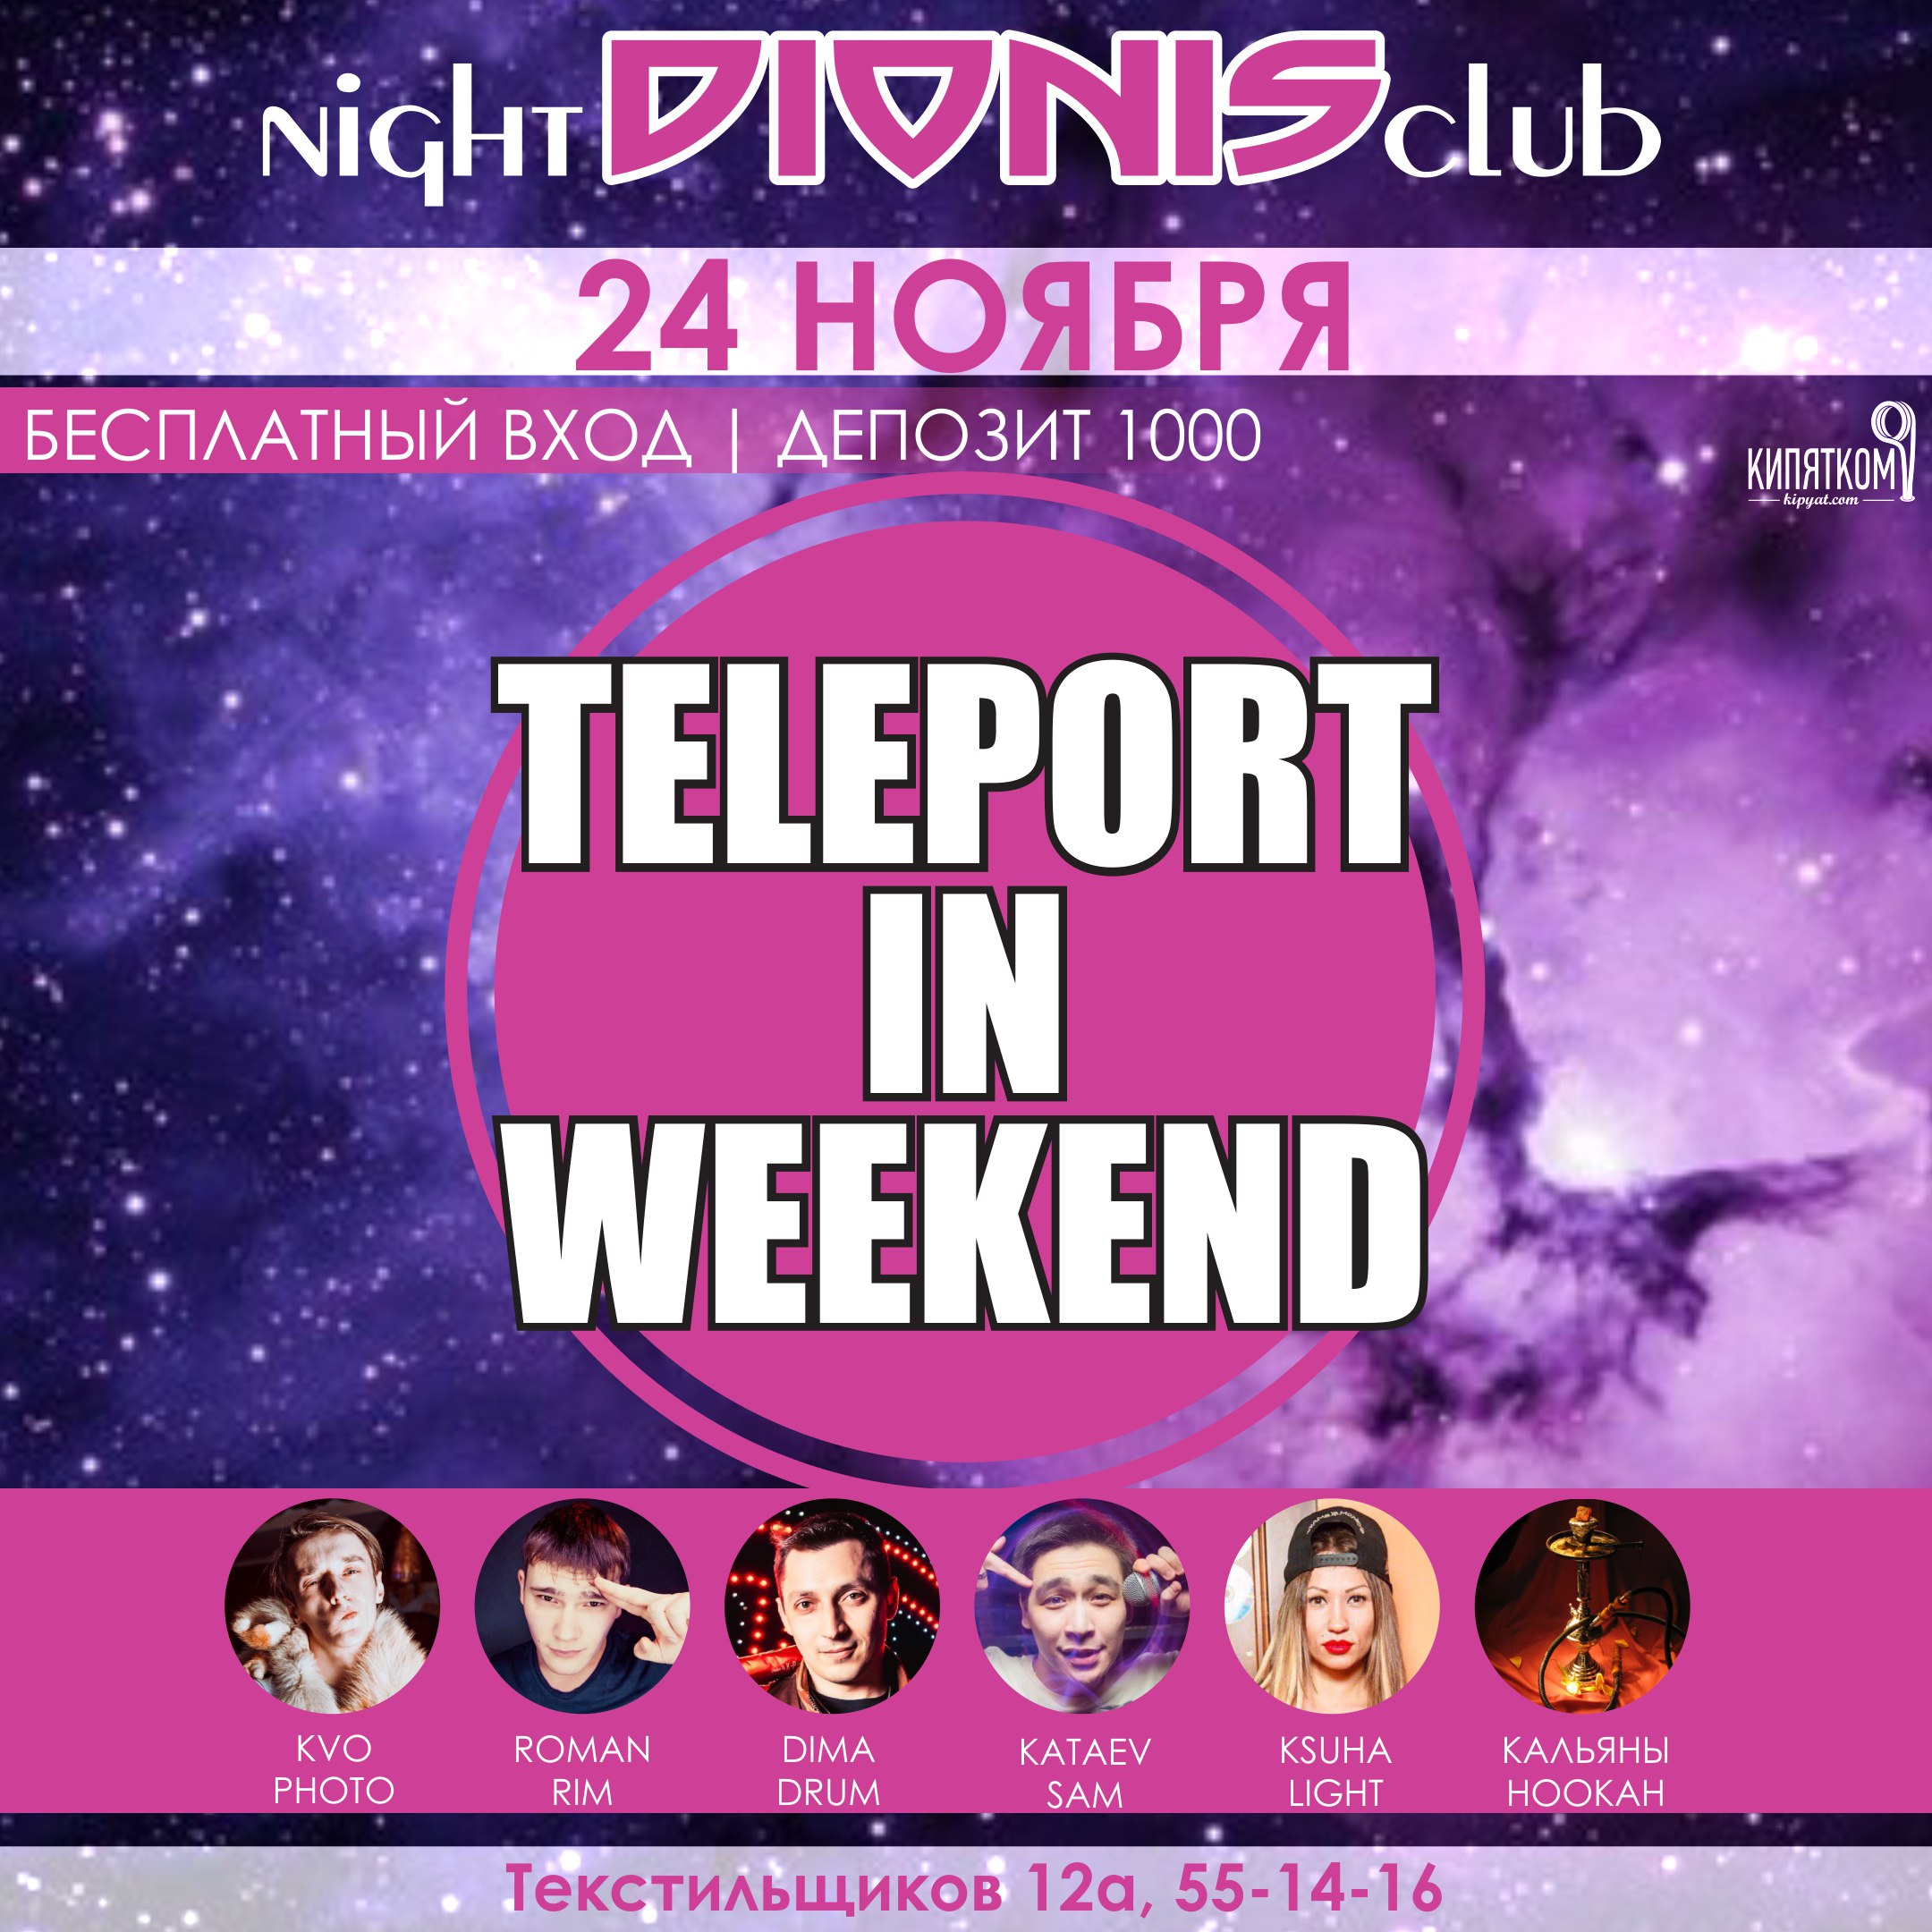 Teleport in weekend